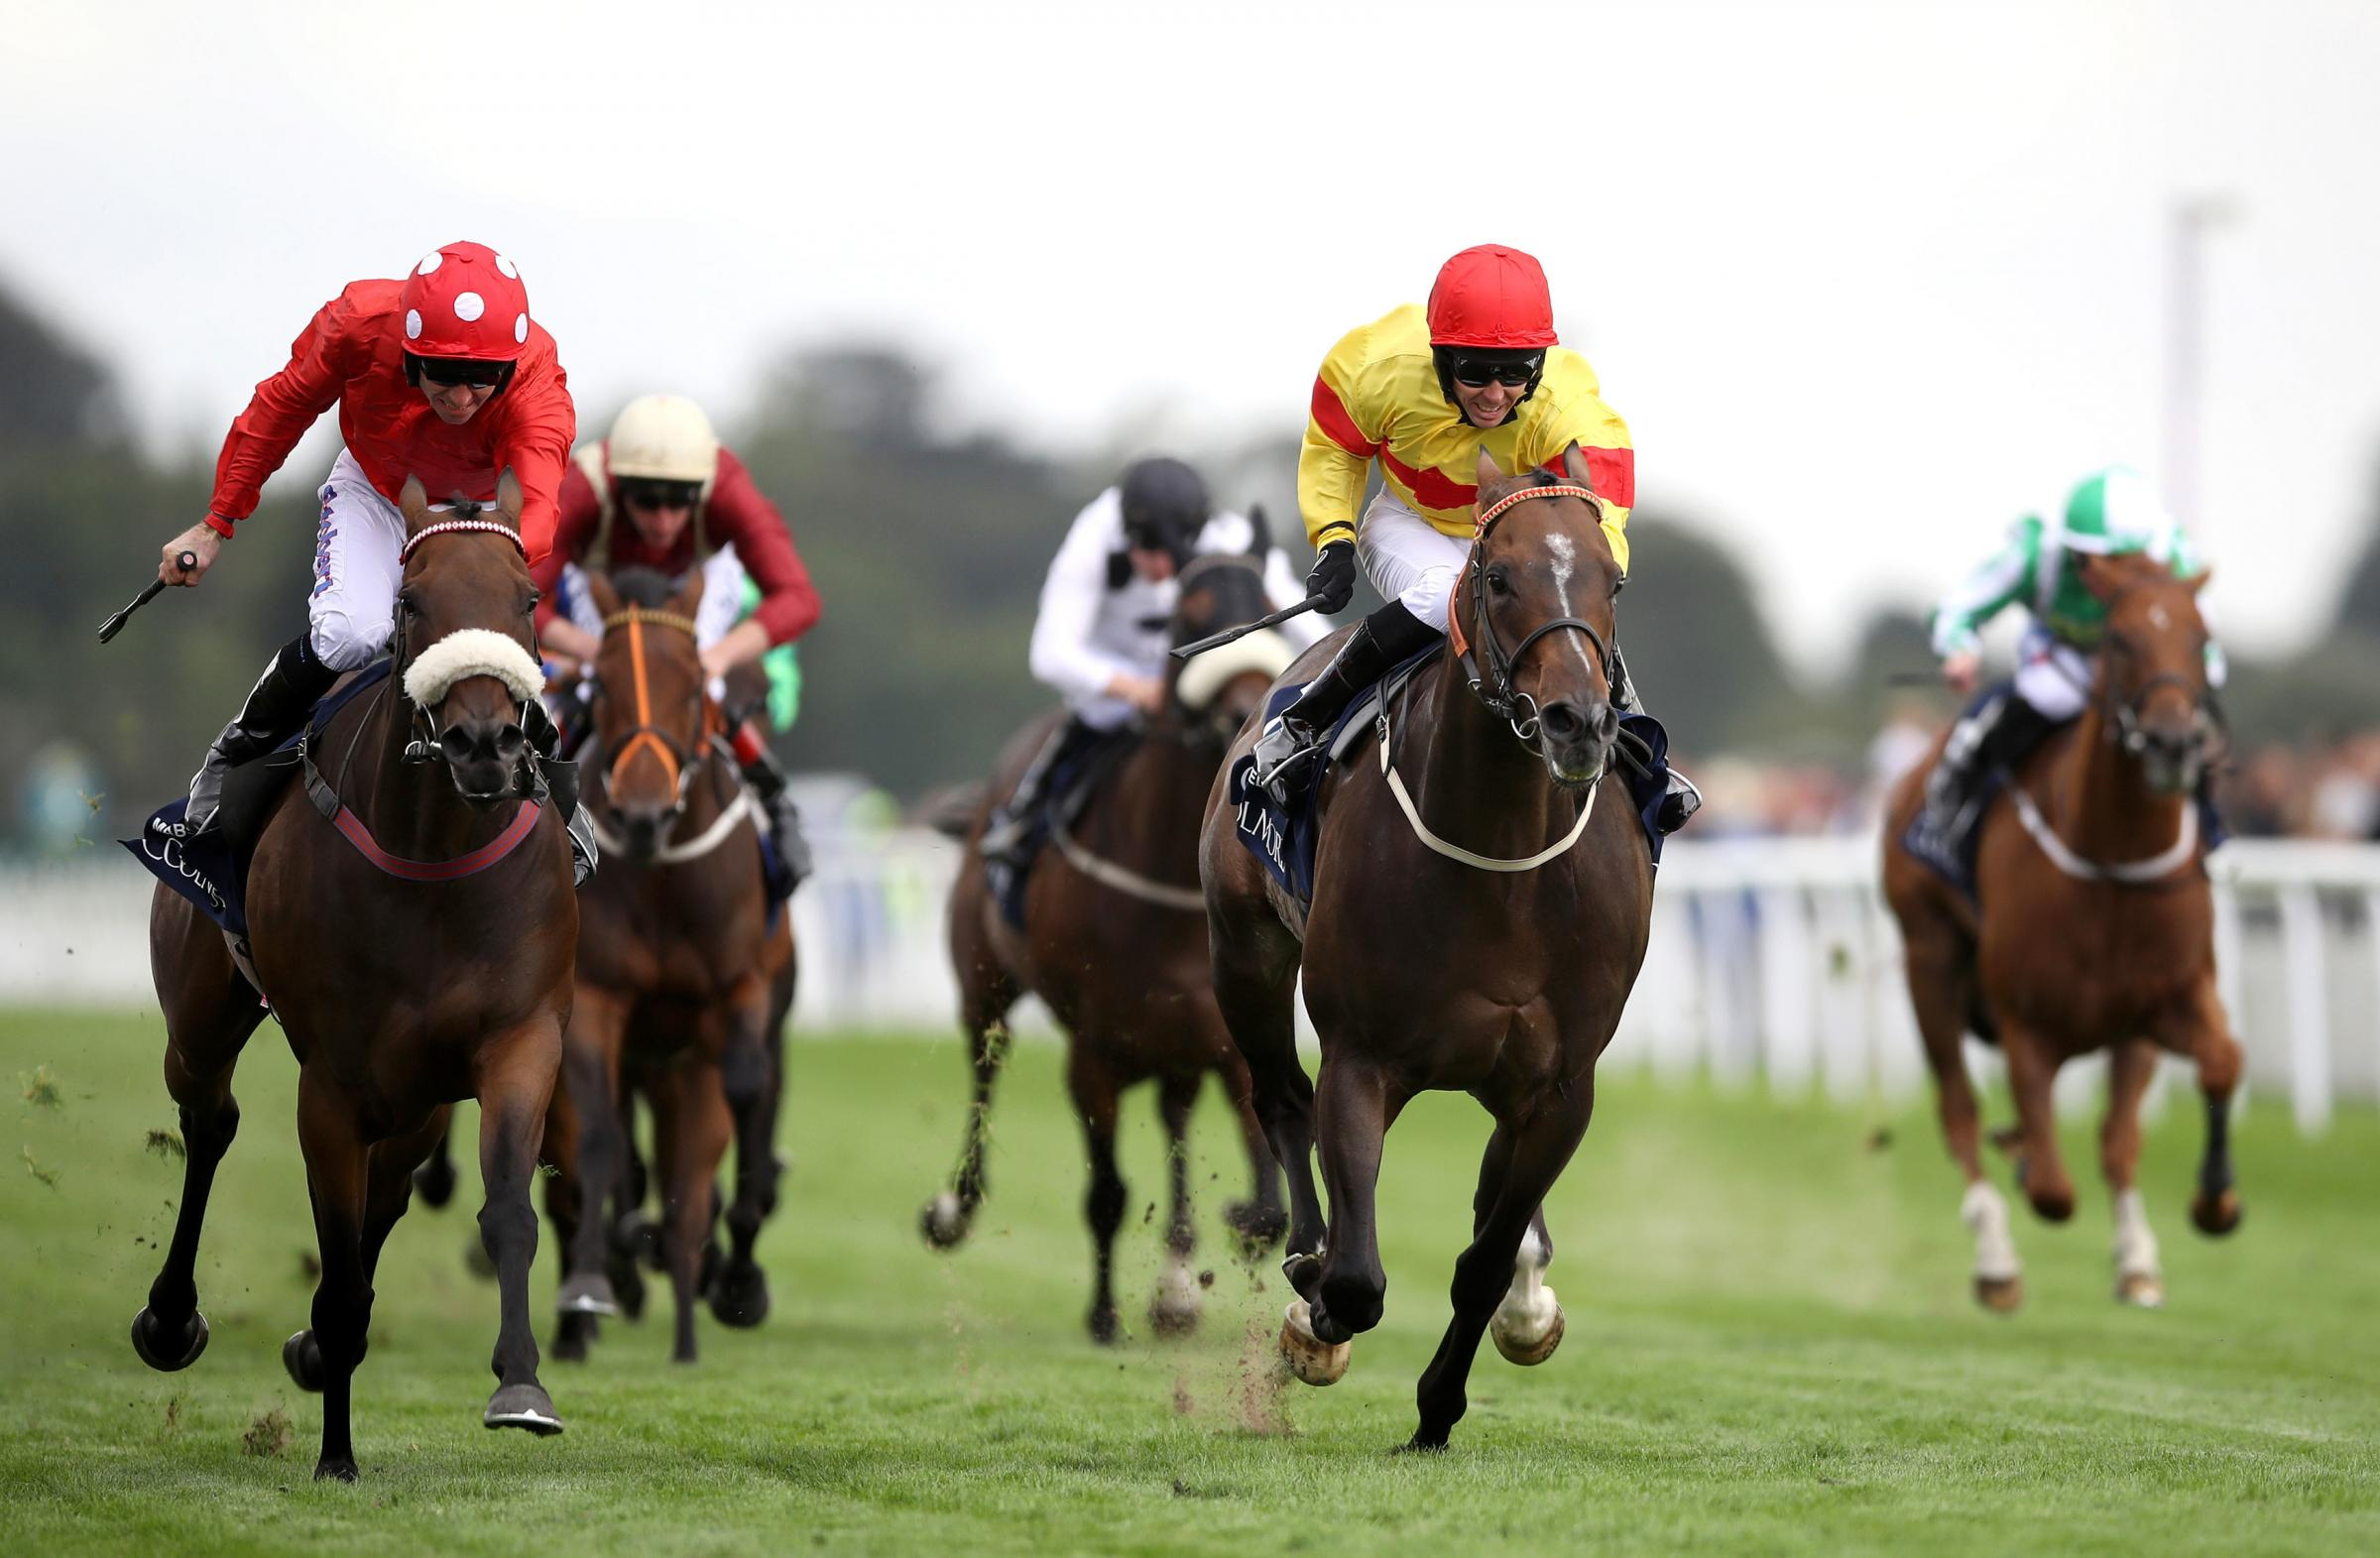 SO CLOSE: Alpha Delphini (right) and Mabs Cross (left) battle out a thrilling finish to August's Nunthorpe Stakes at York